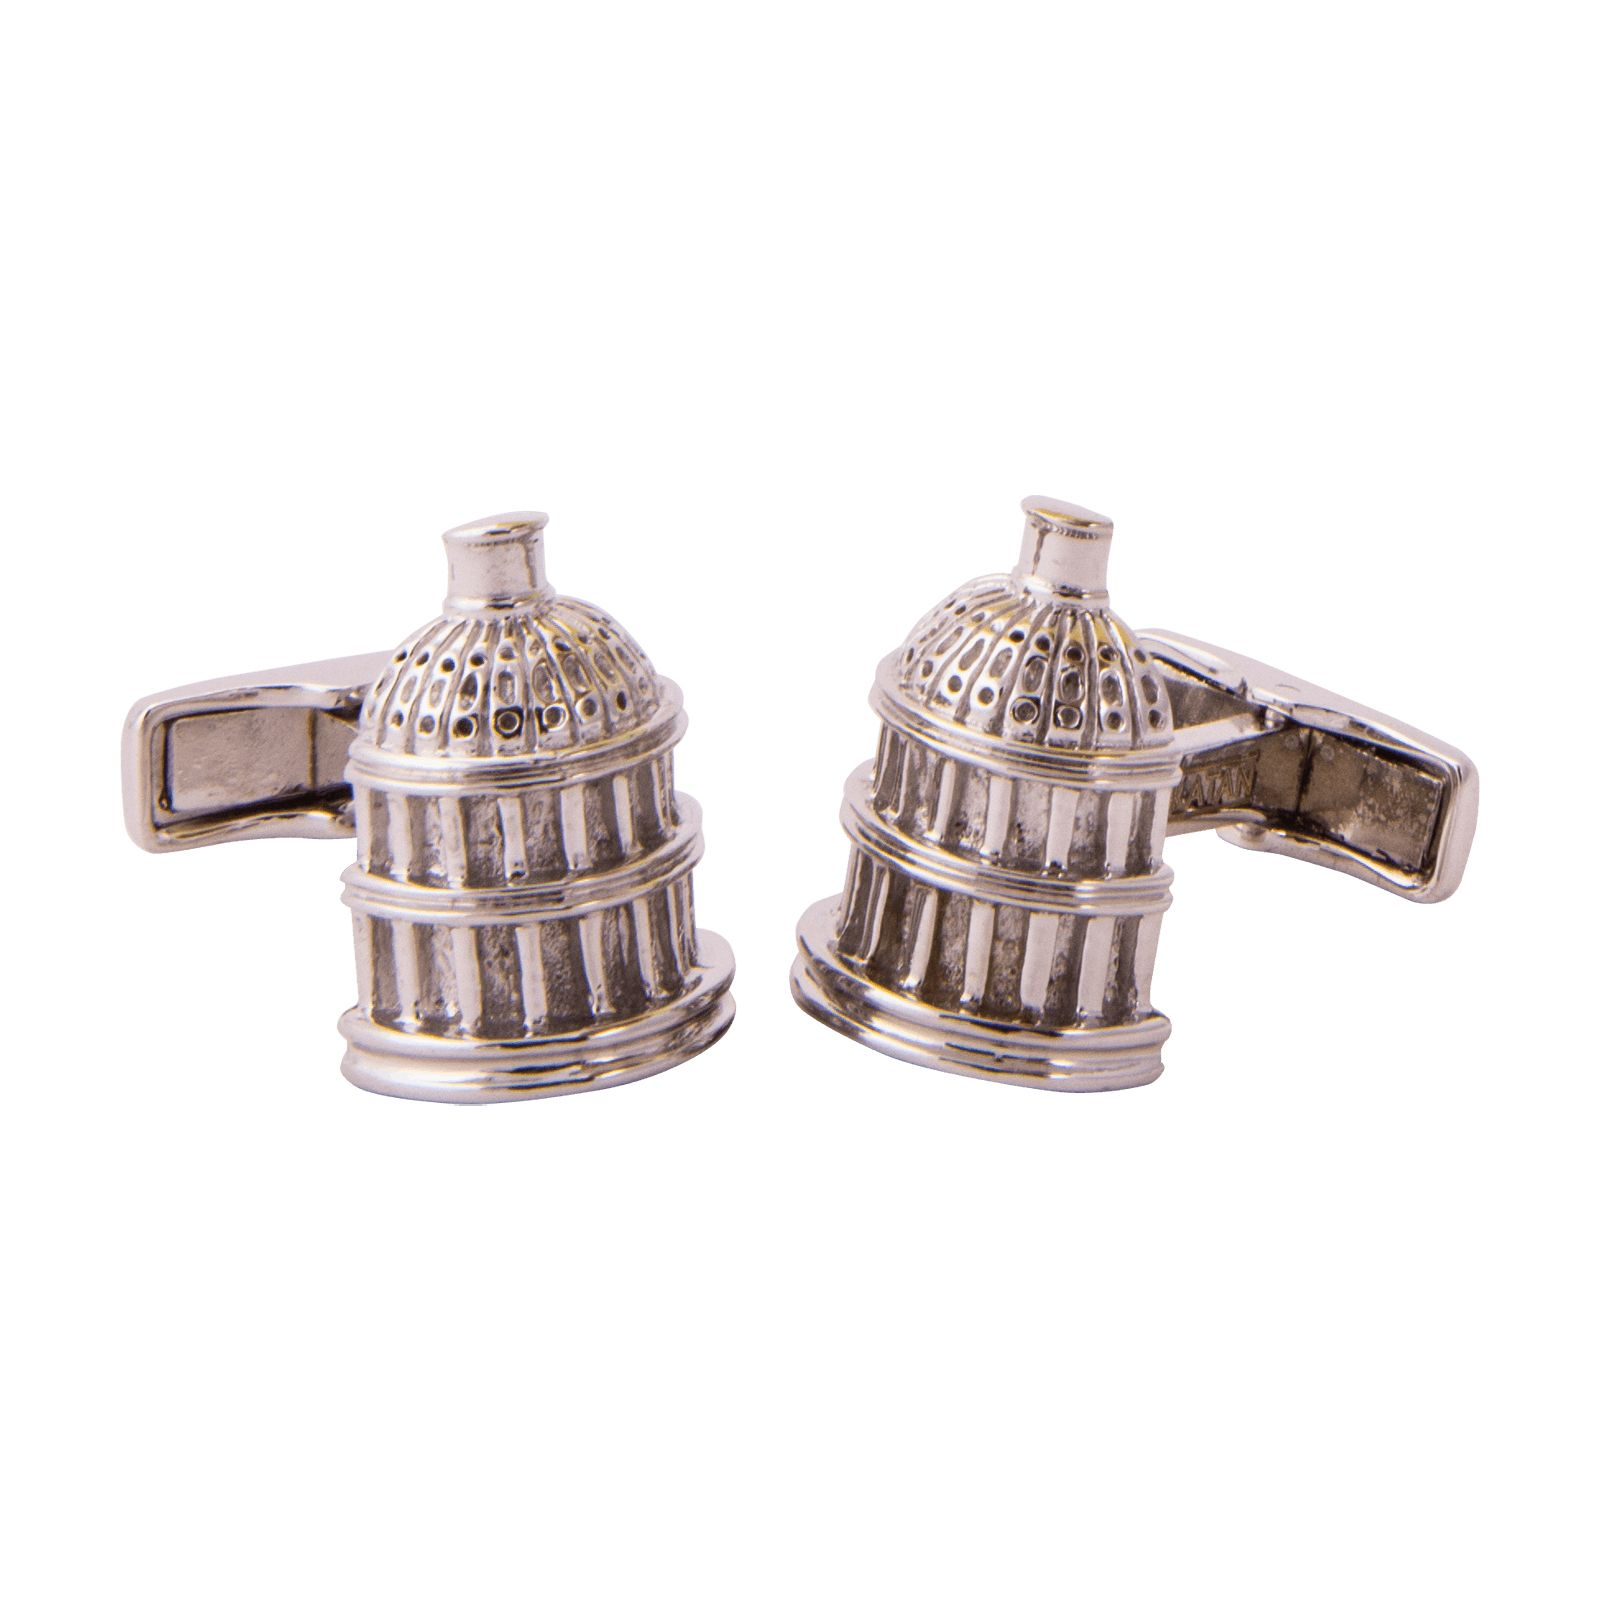 Texas Capitol Dome Sterling Silver Cuff Links